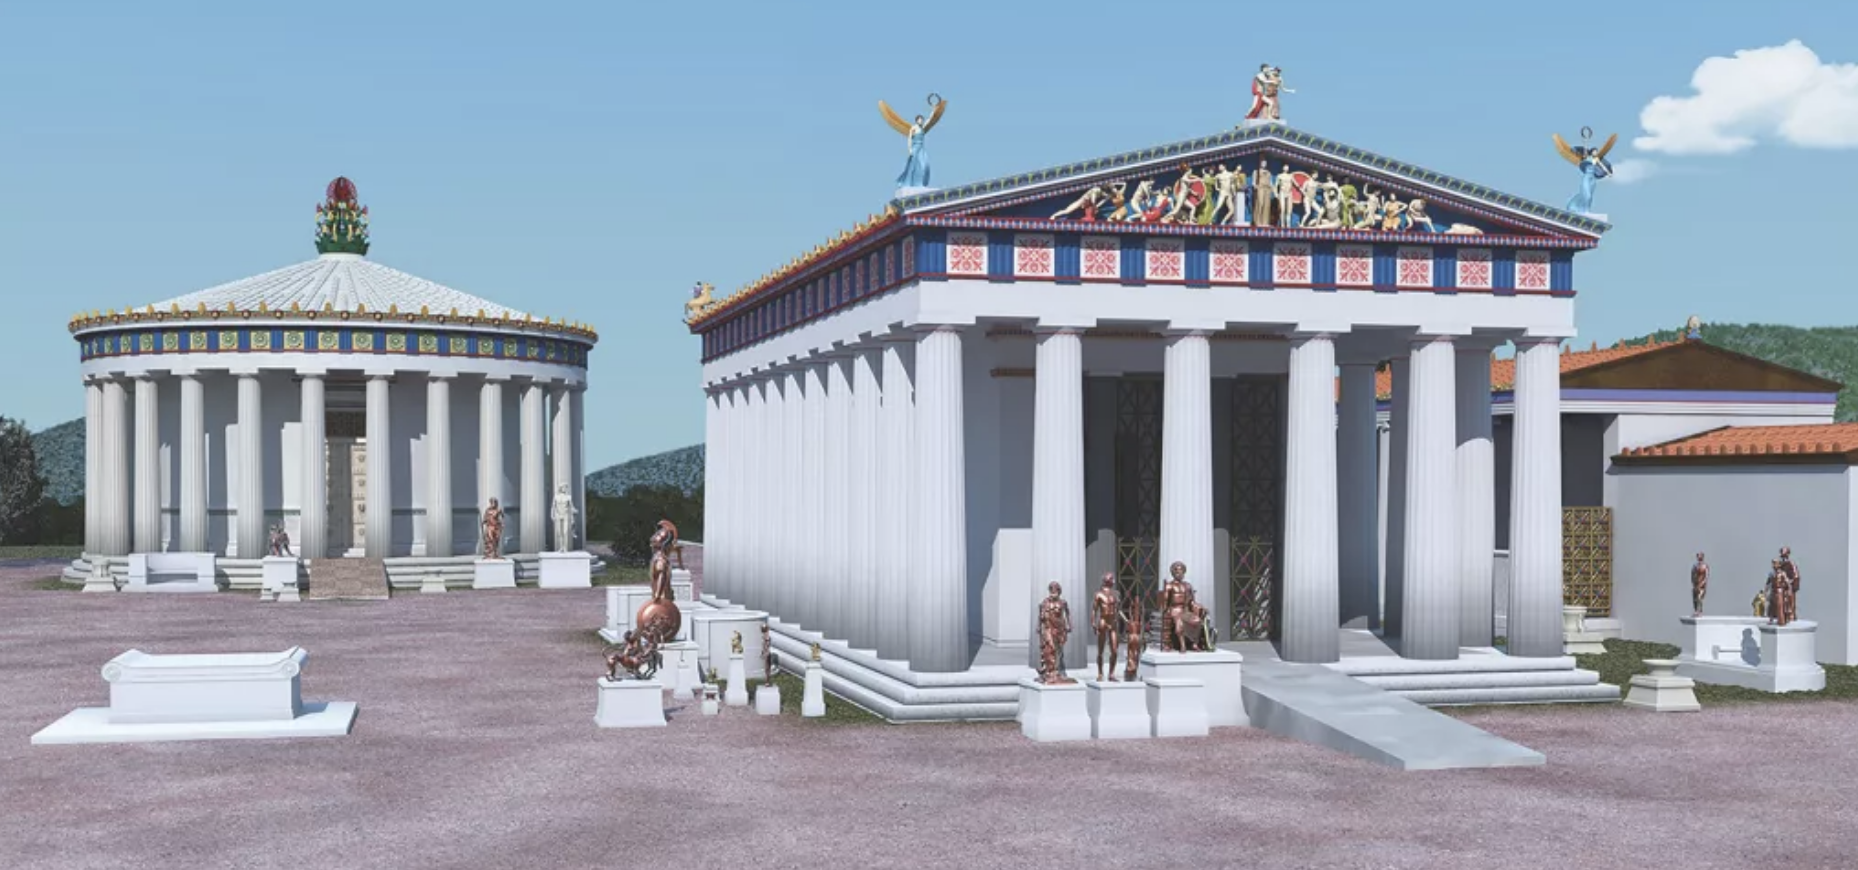 Some Ancient Greek Temples Had 'Disability Ramps', According to This Researcher